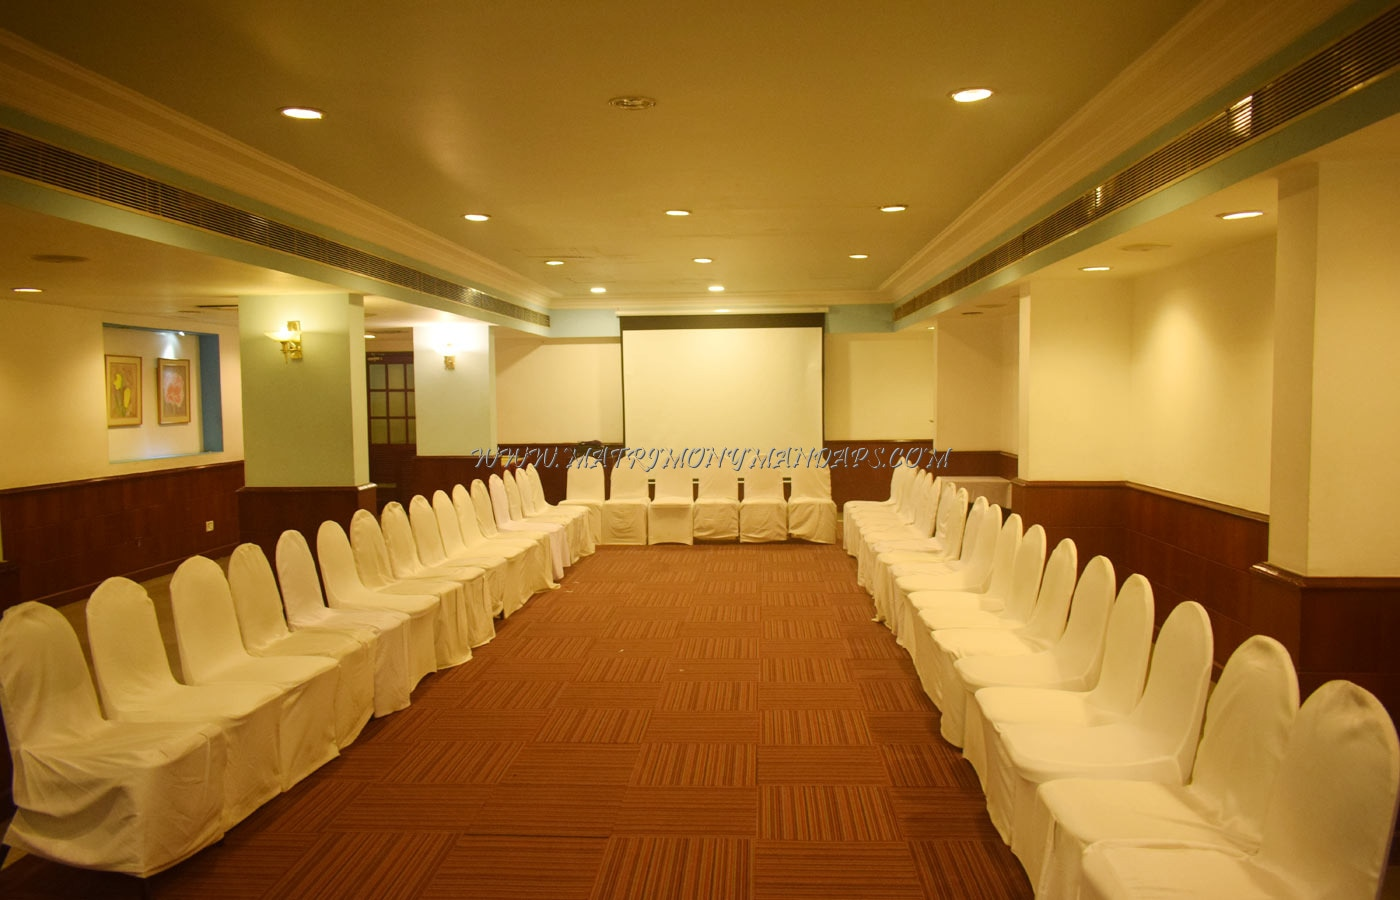 Find the availability of the Abad Plaza - Inner Circle Hall (A/C) in MG Road, Kochi and avail special offers